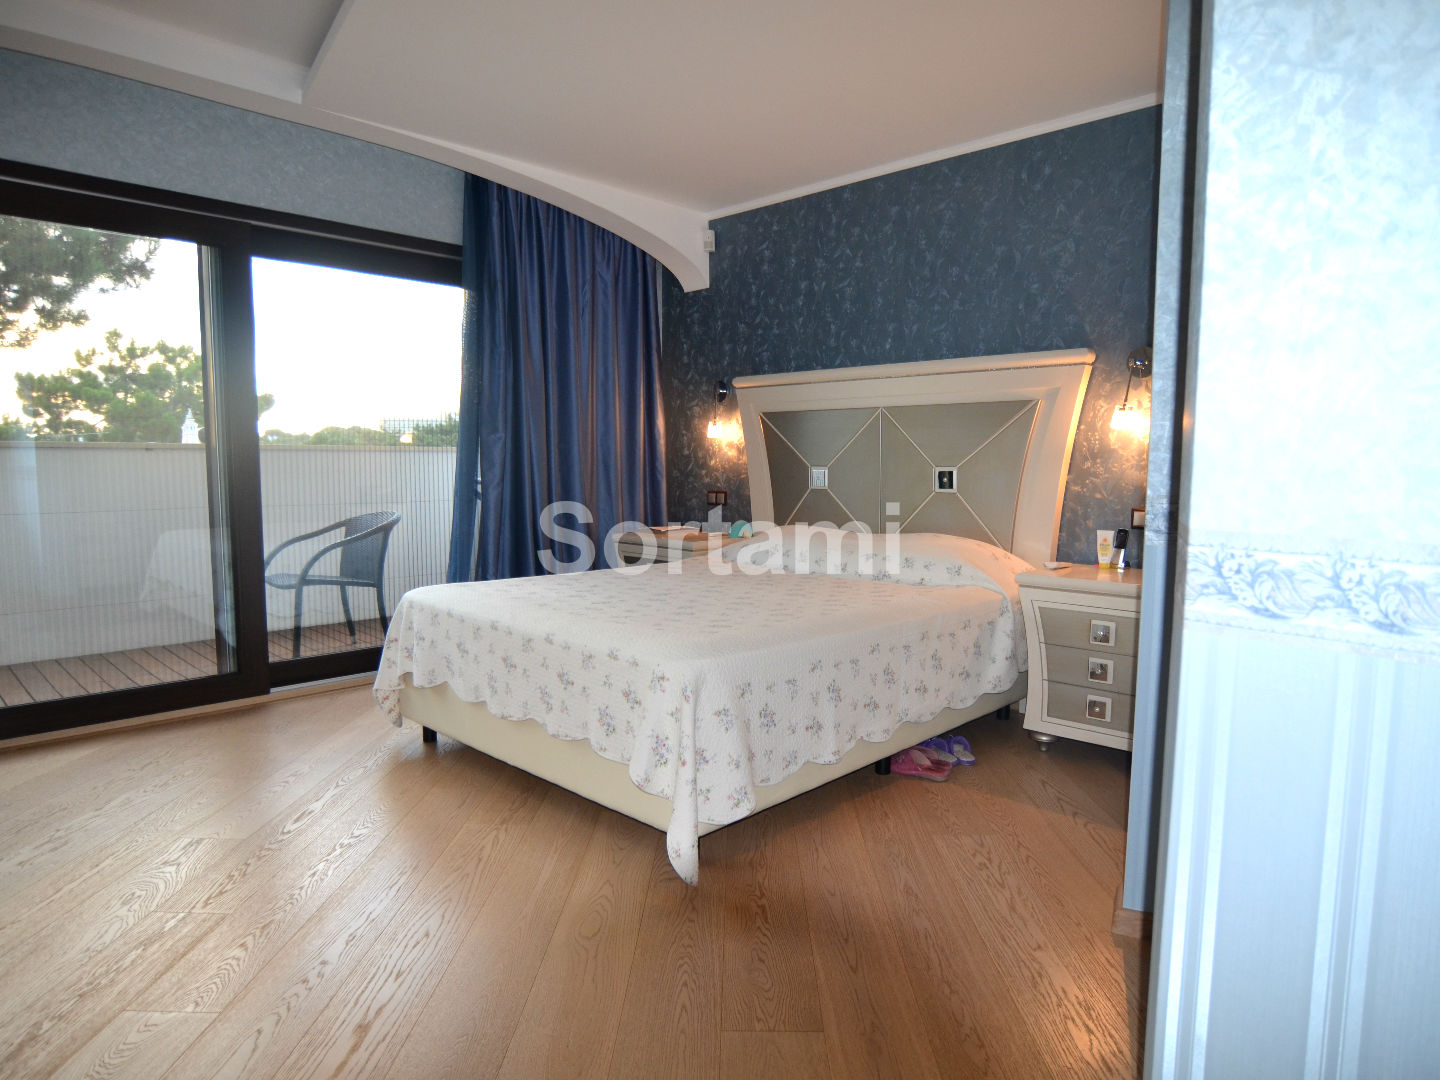 Town House T2, Algarve, Vale do Lobo